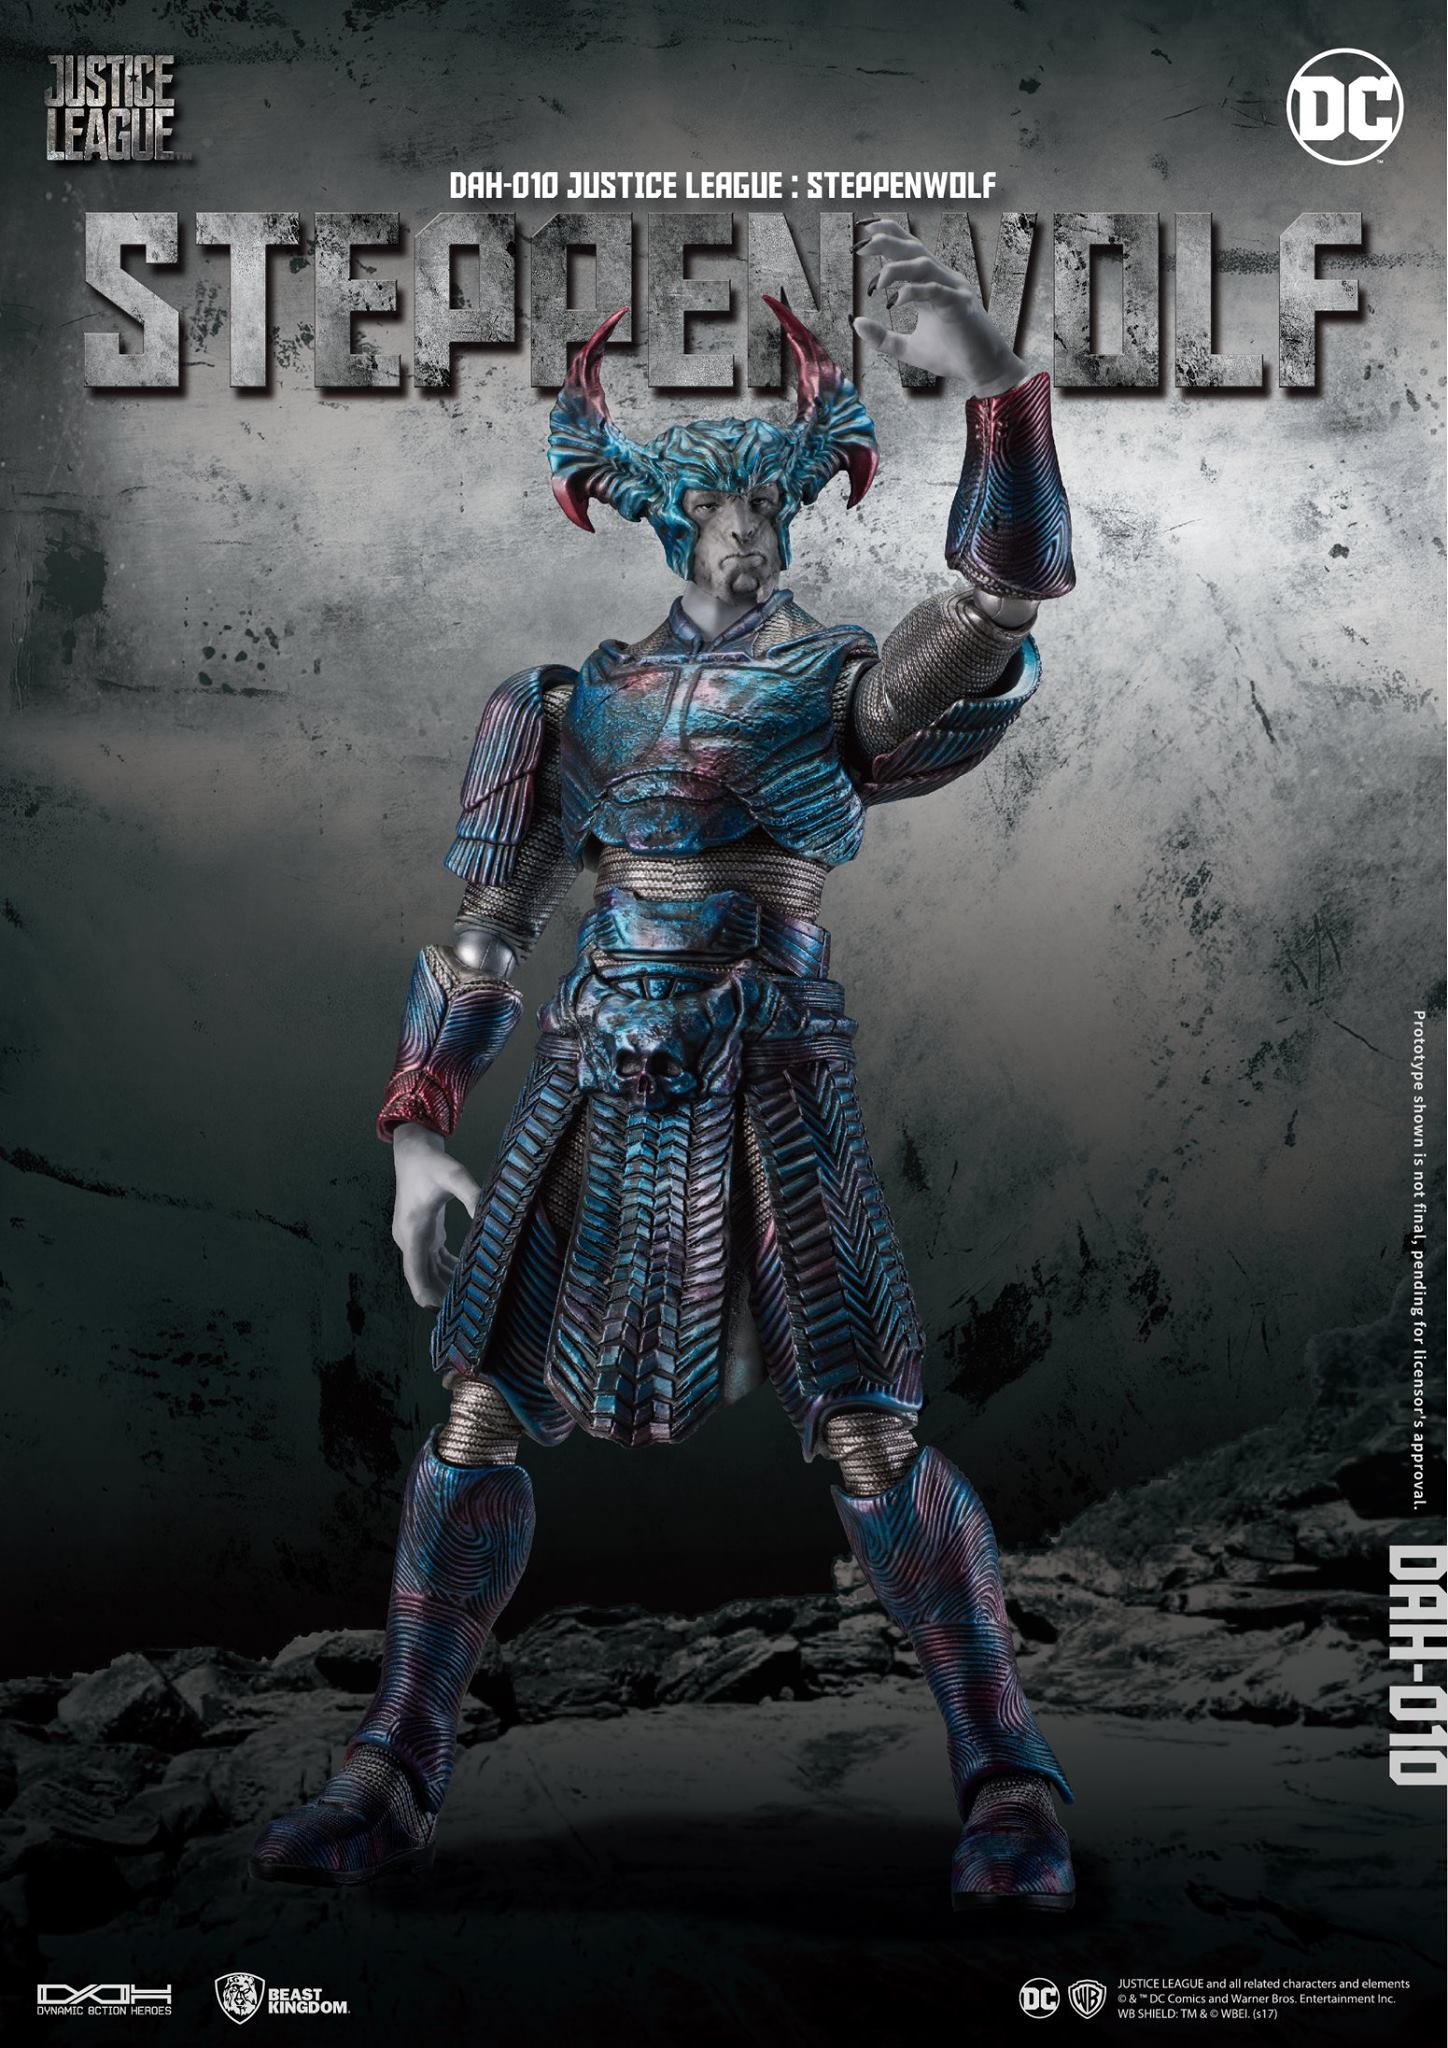 DAH-Justice-League-Steppenwolf-003